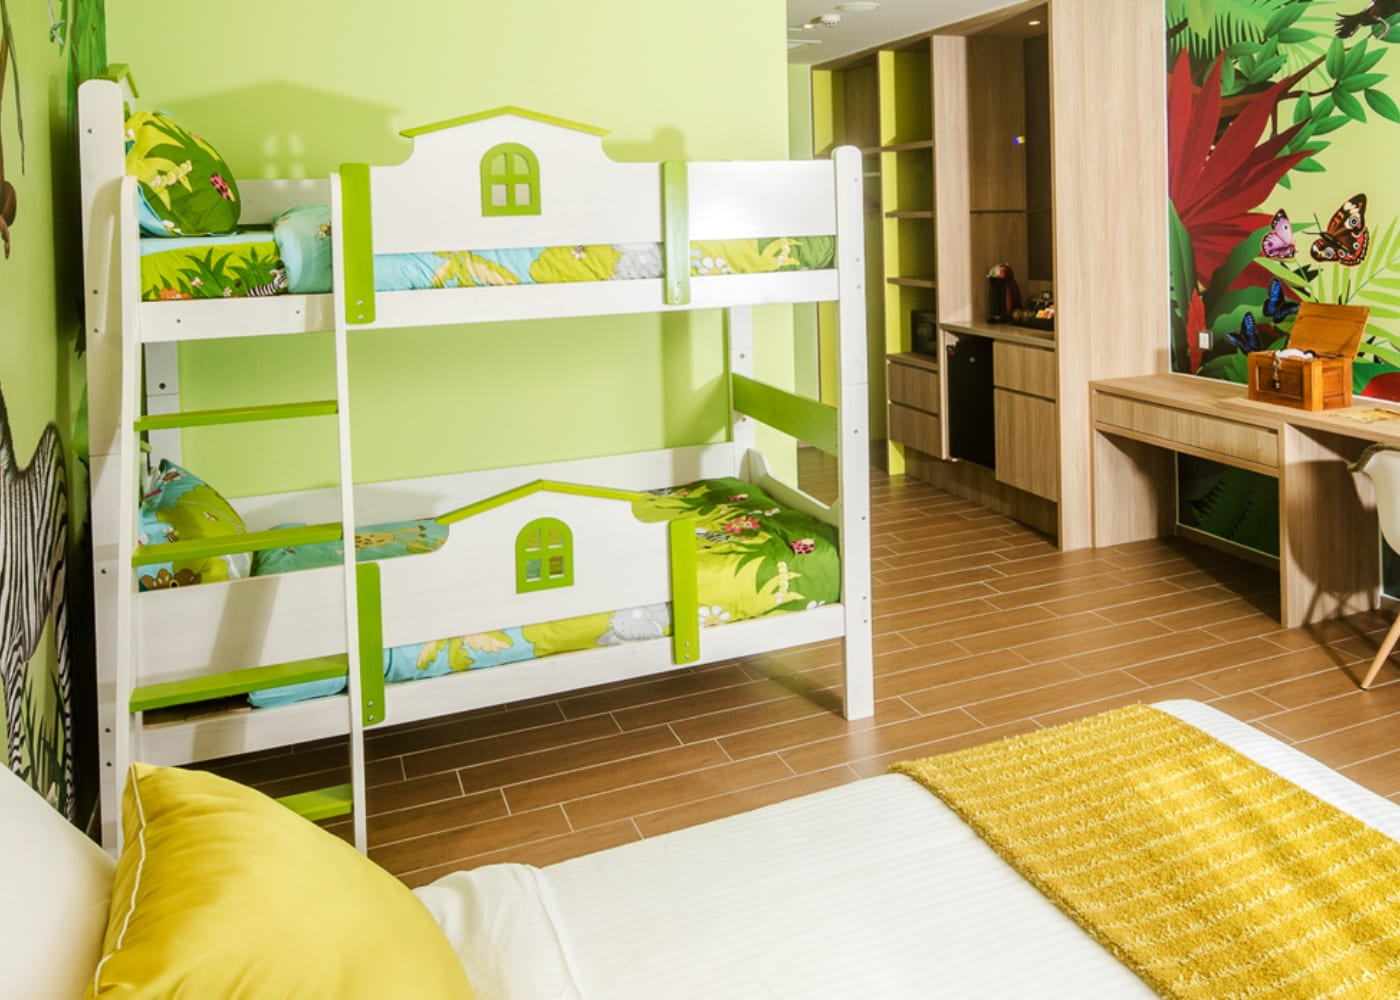 singapore hotels dhotel staycations with kids